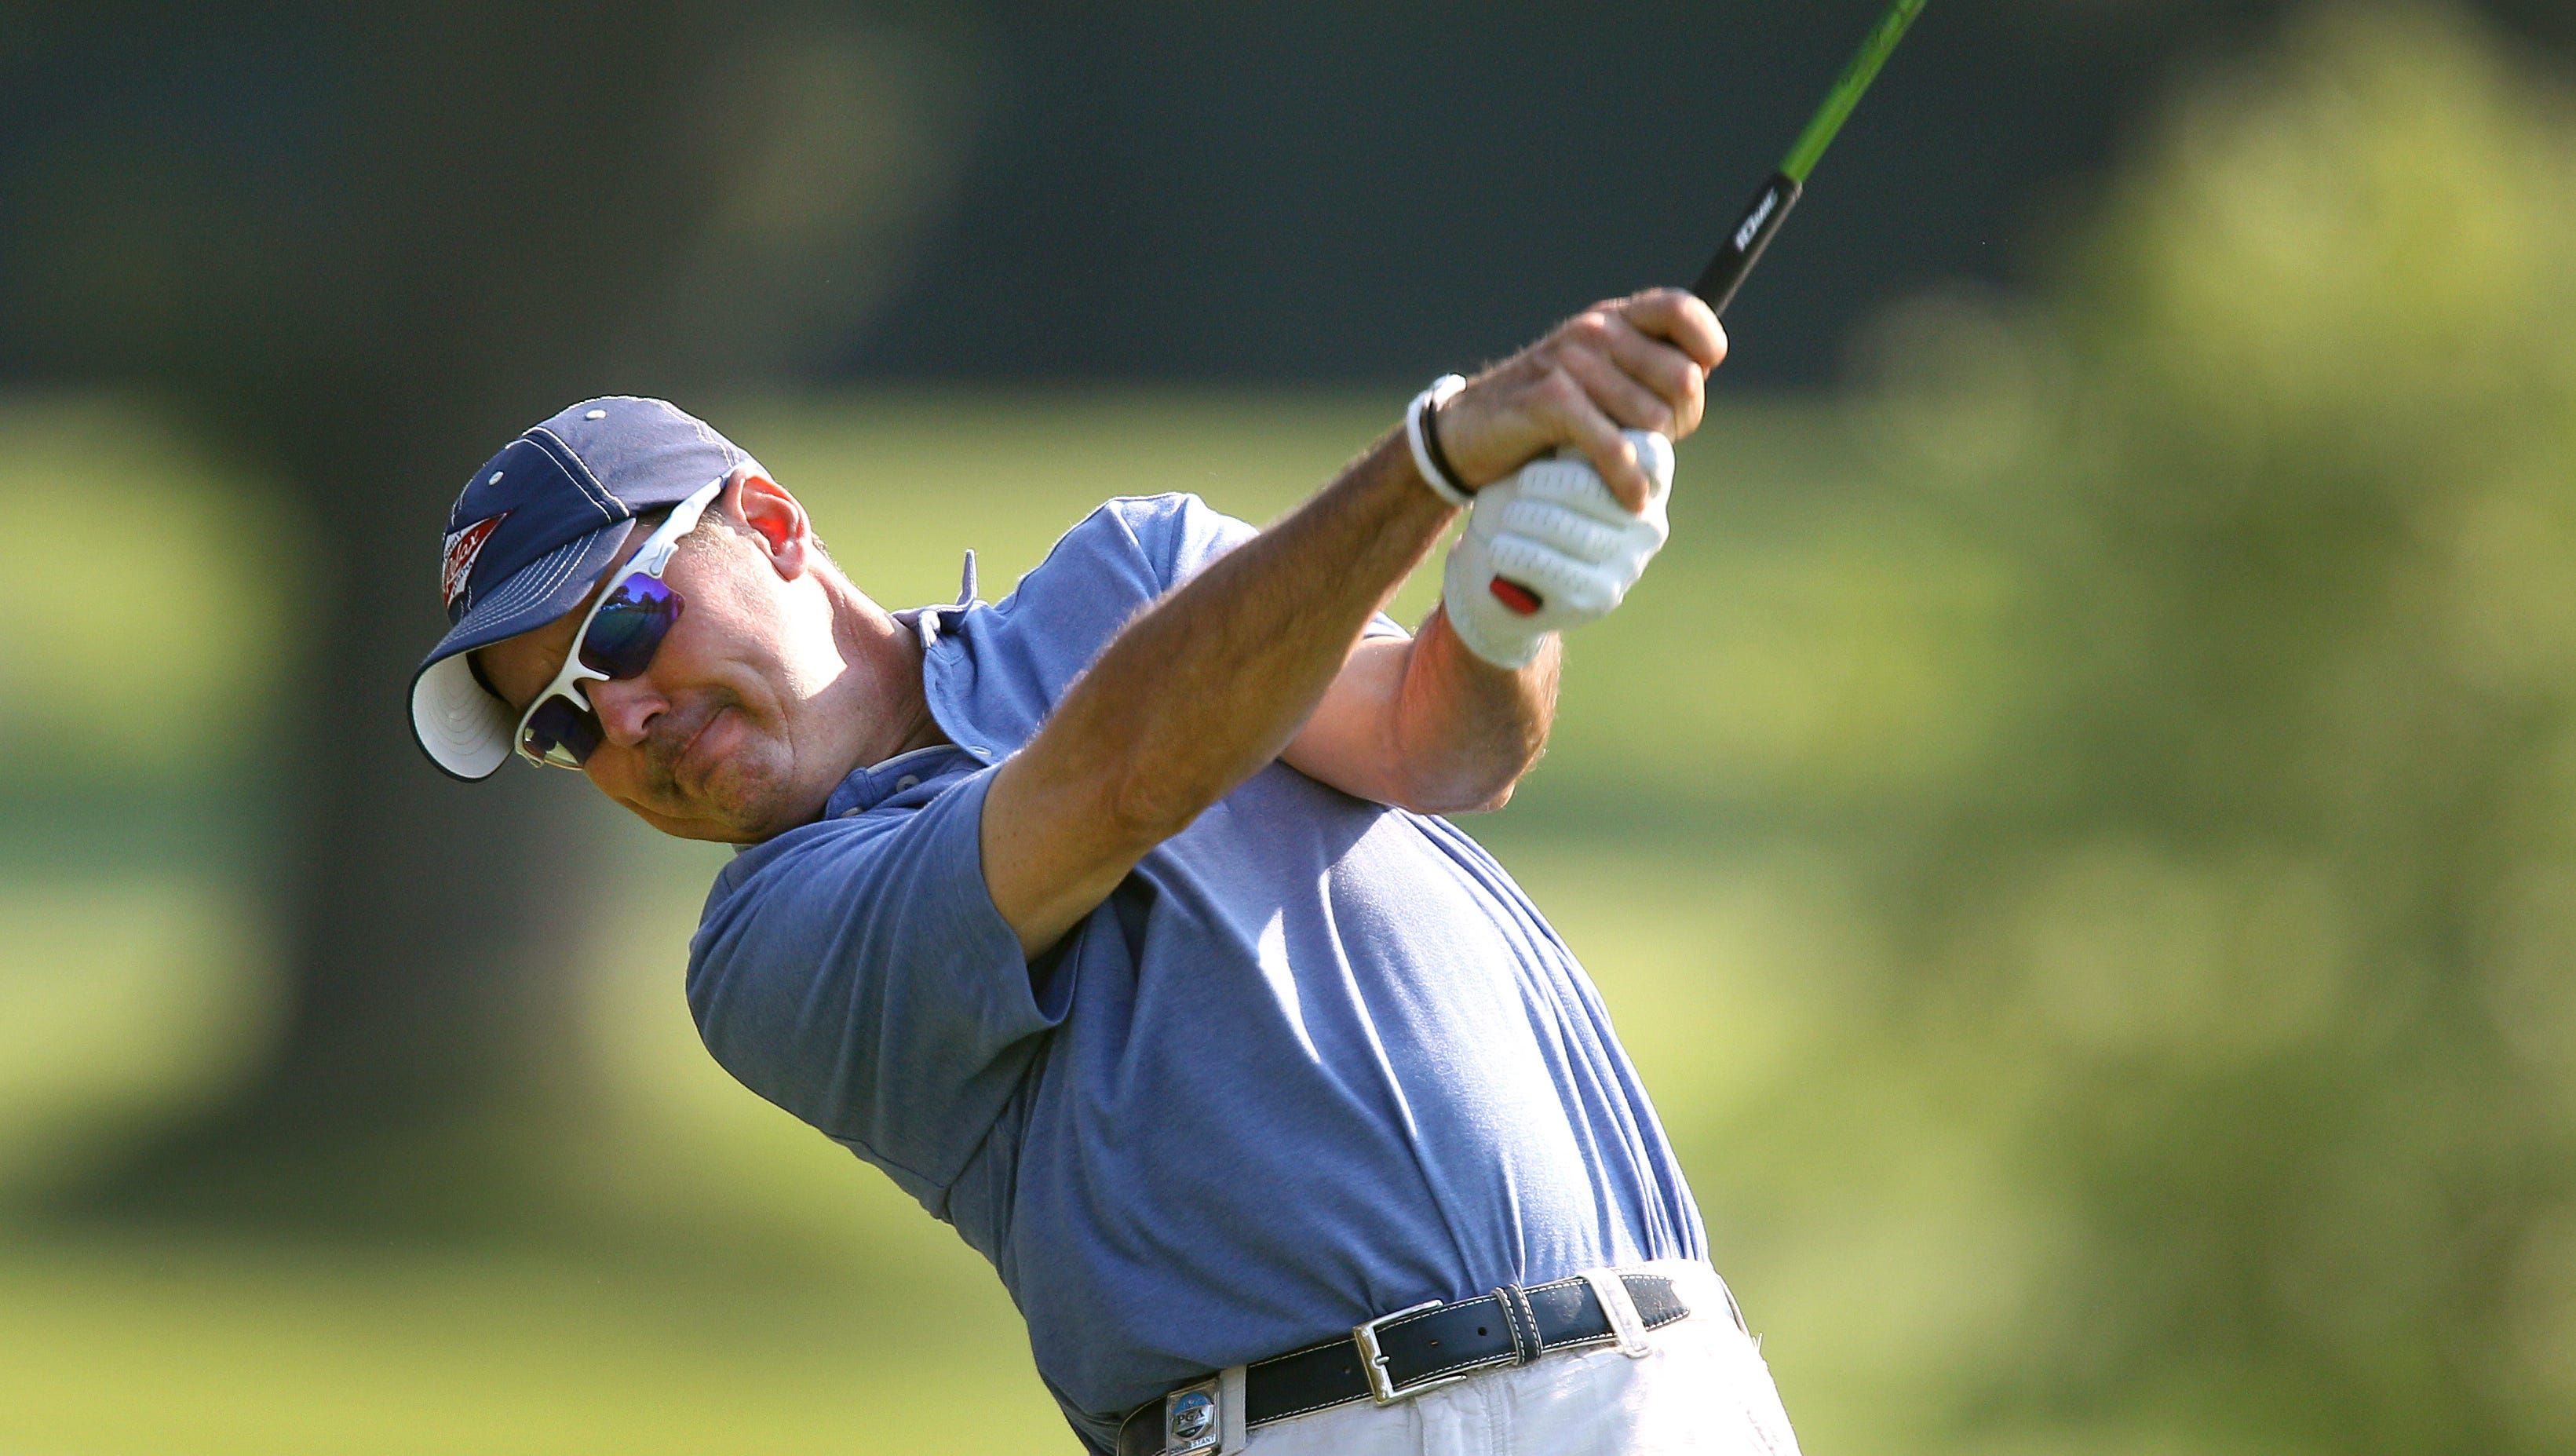 Former PGA champion Rich Beem drives off the 9th tee.